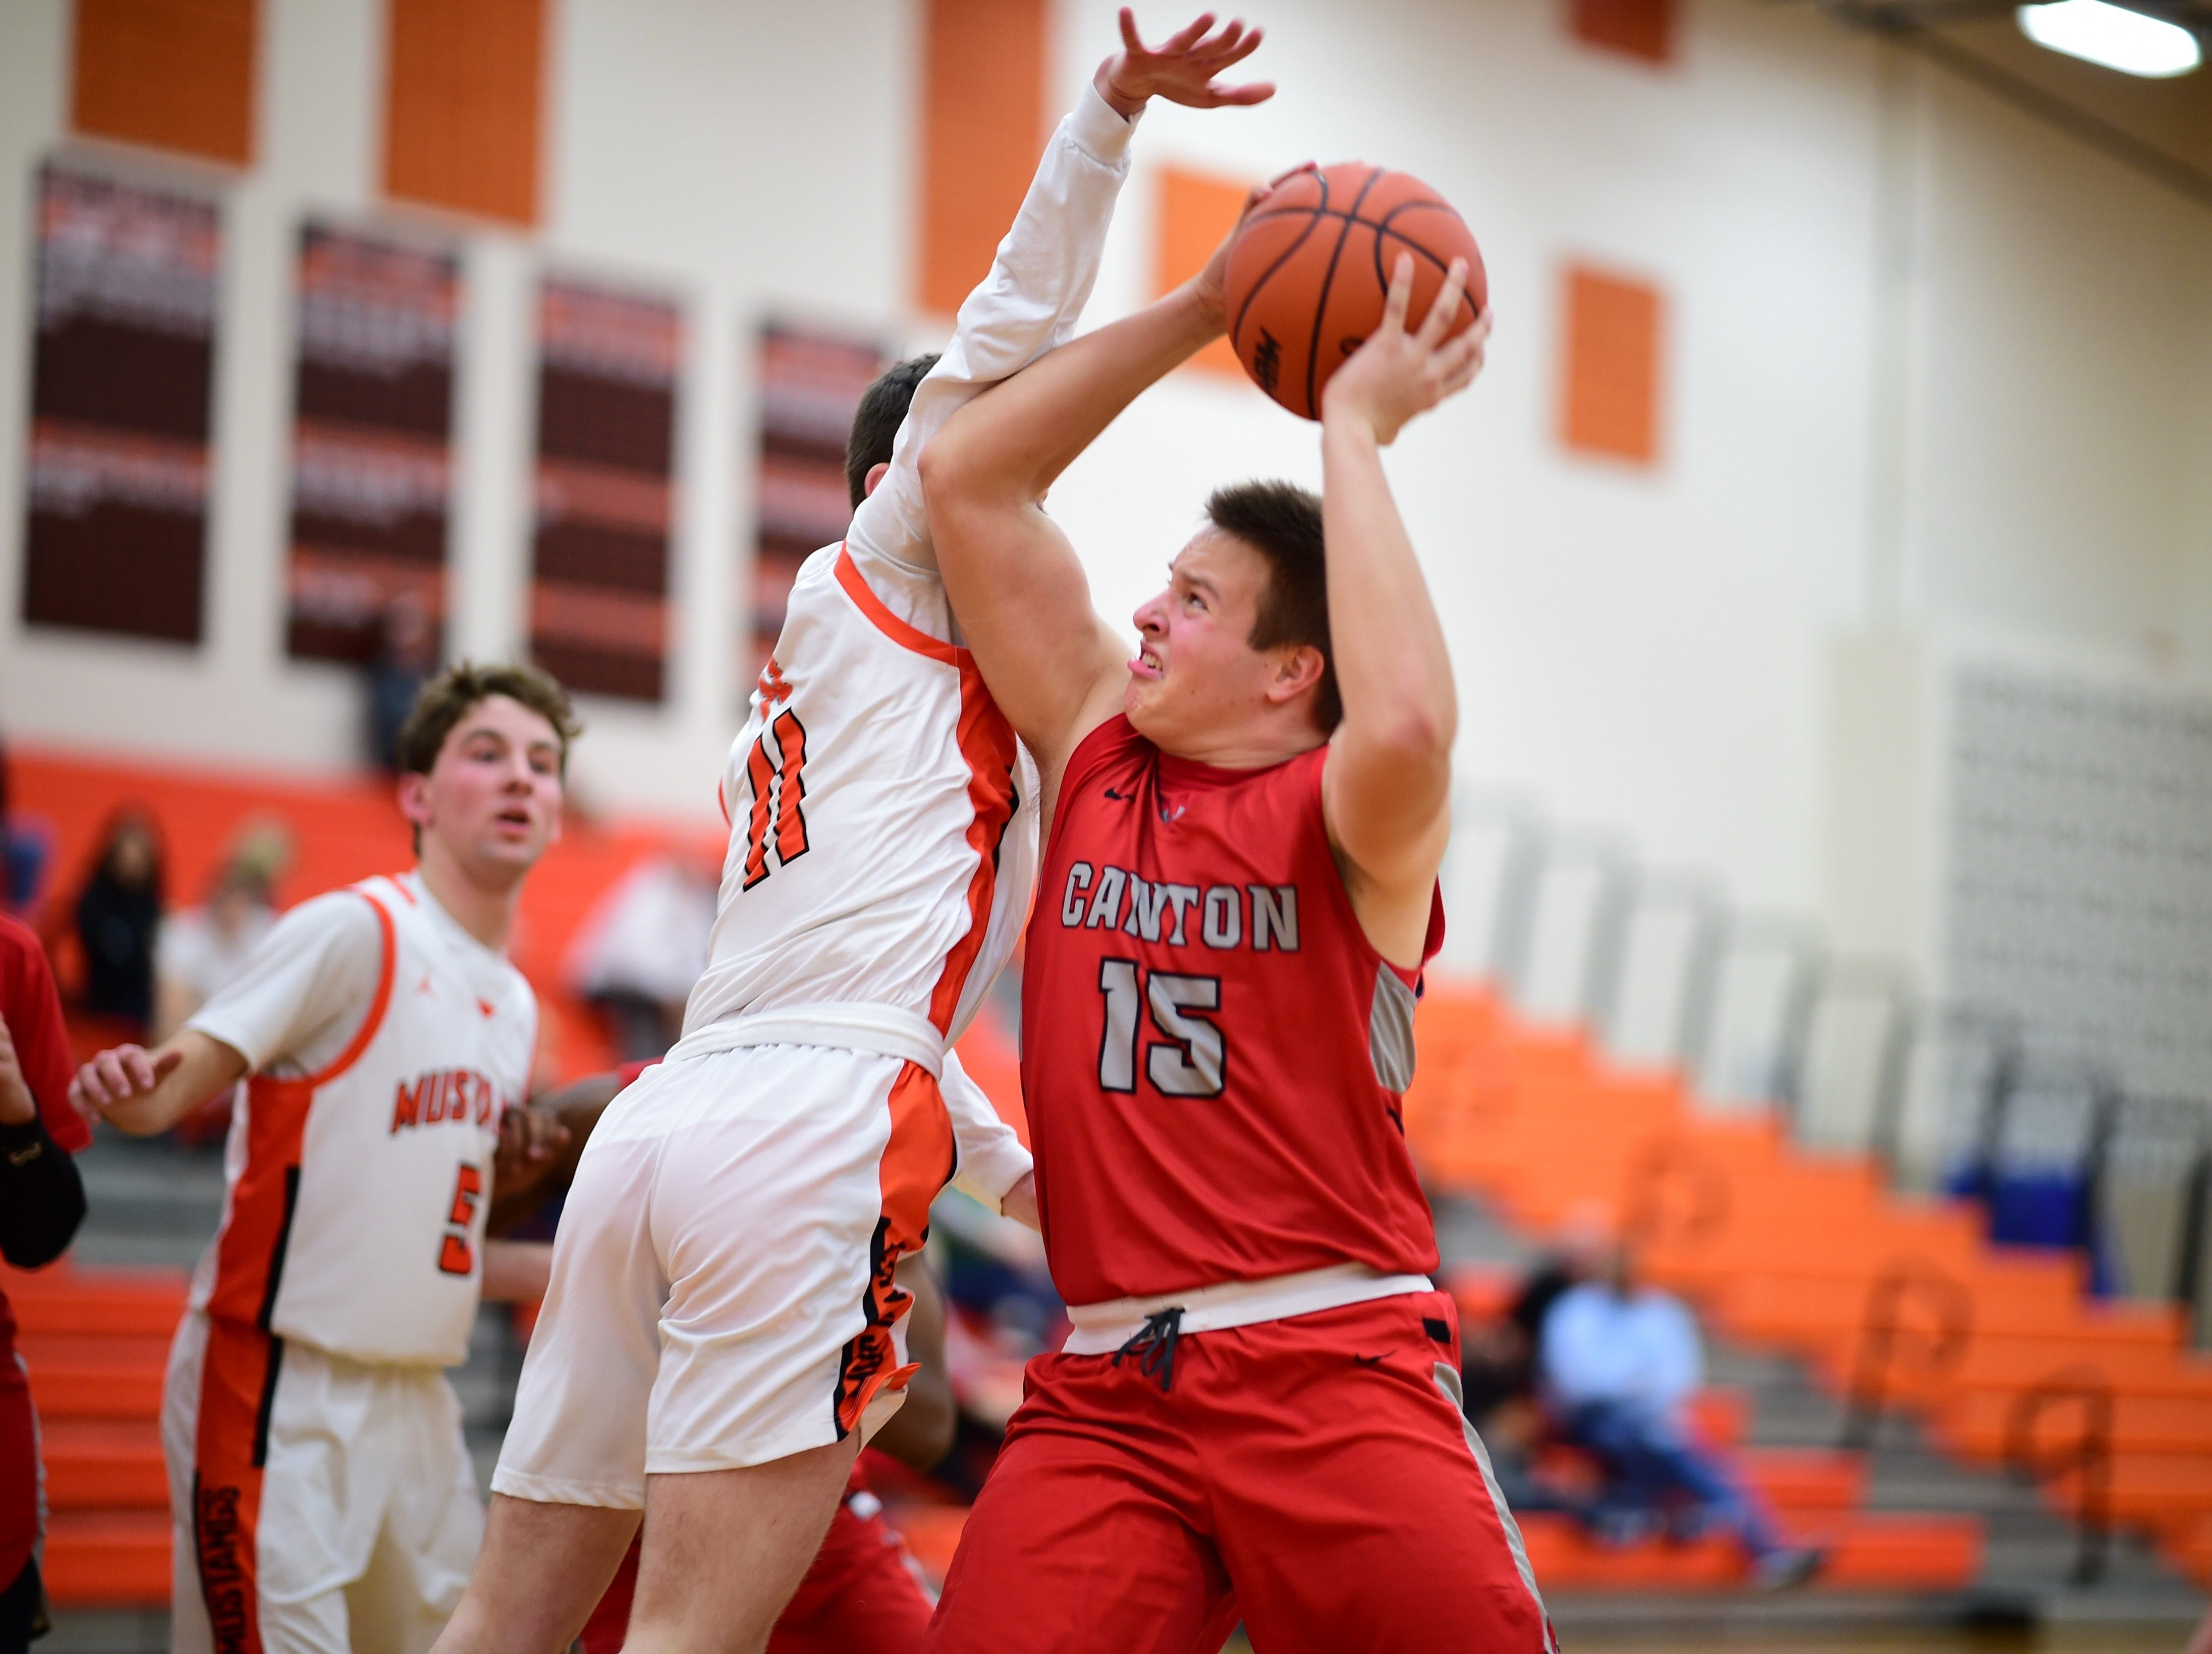 Muscling in for a shot is Canton's Max Barnes (15), while Northville's Tyler Milo (11) tries to deny the attempt.